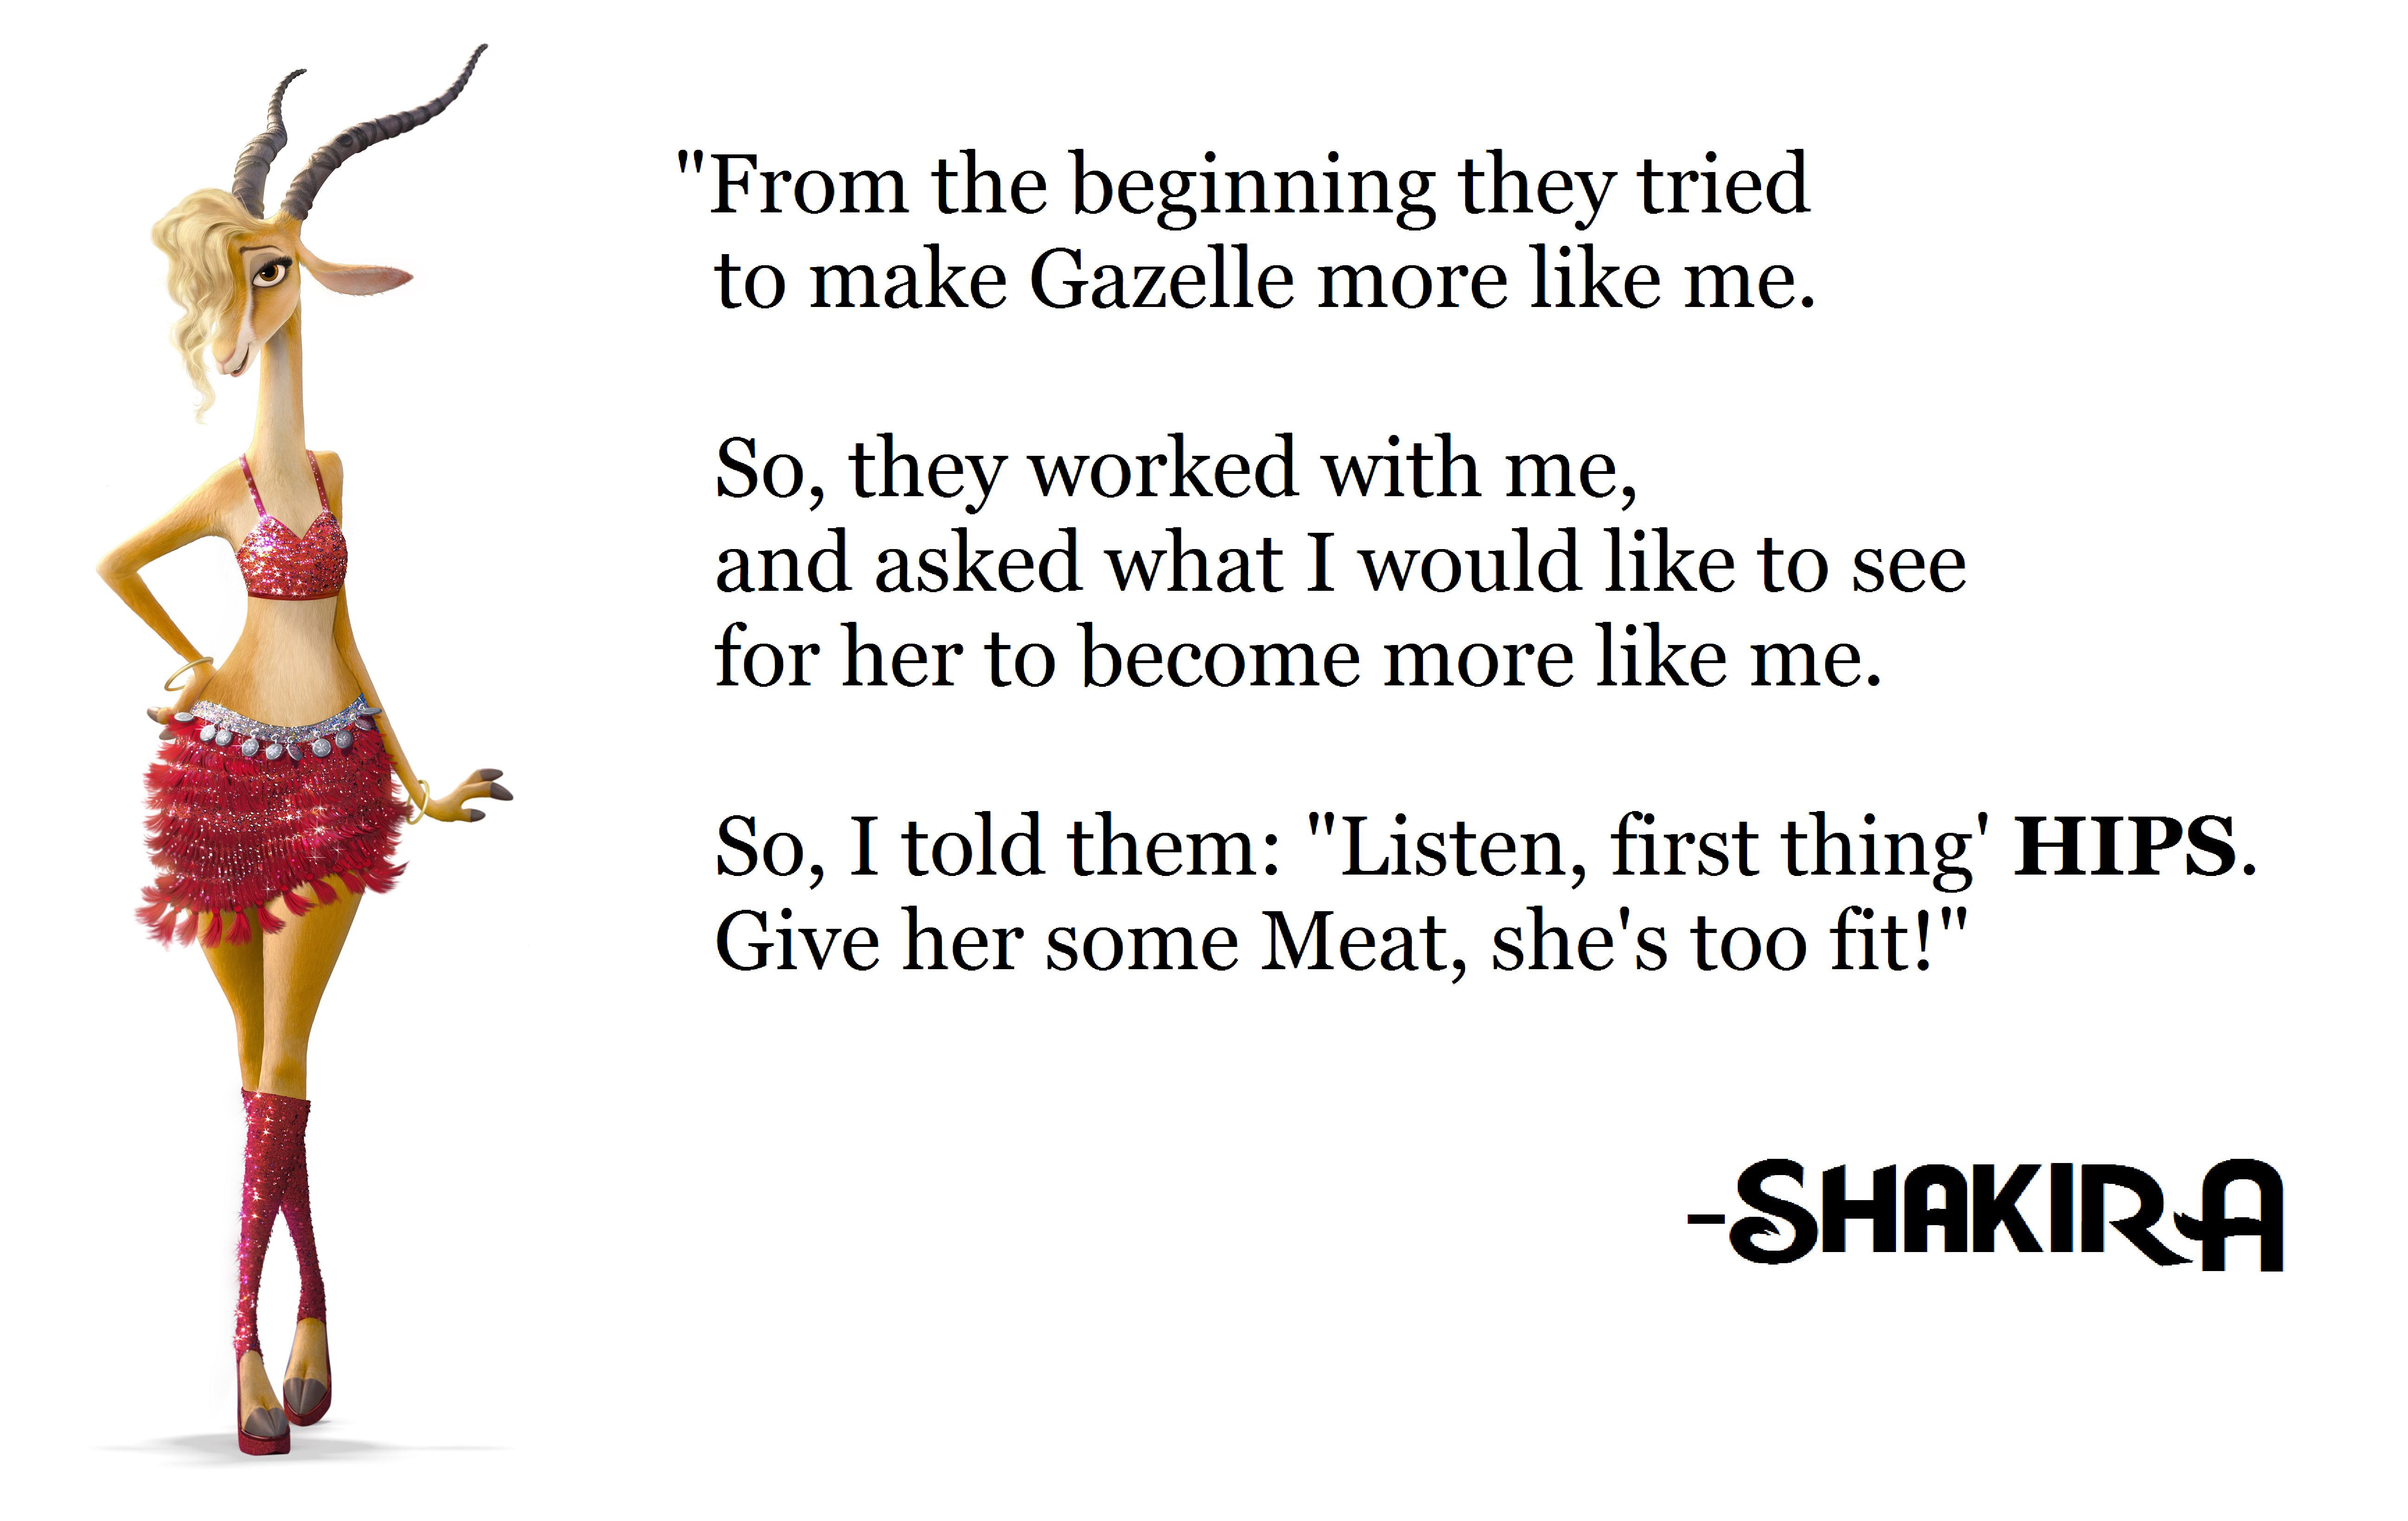 Shakira S Contribition To Gazelle By Metroxlr On Deviantart